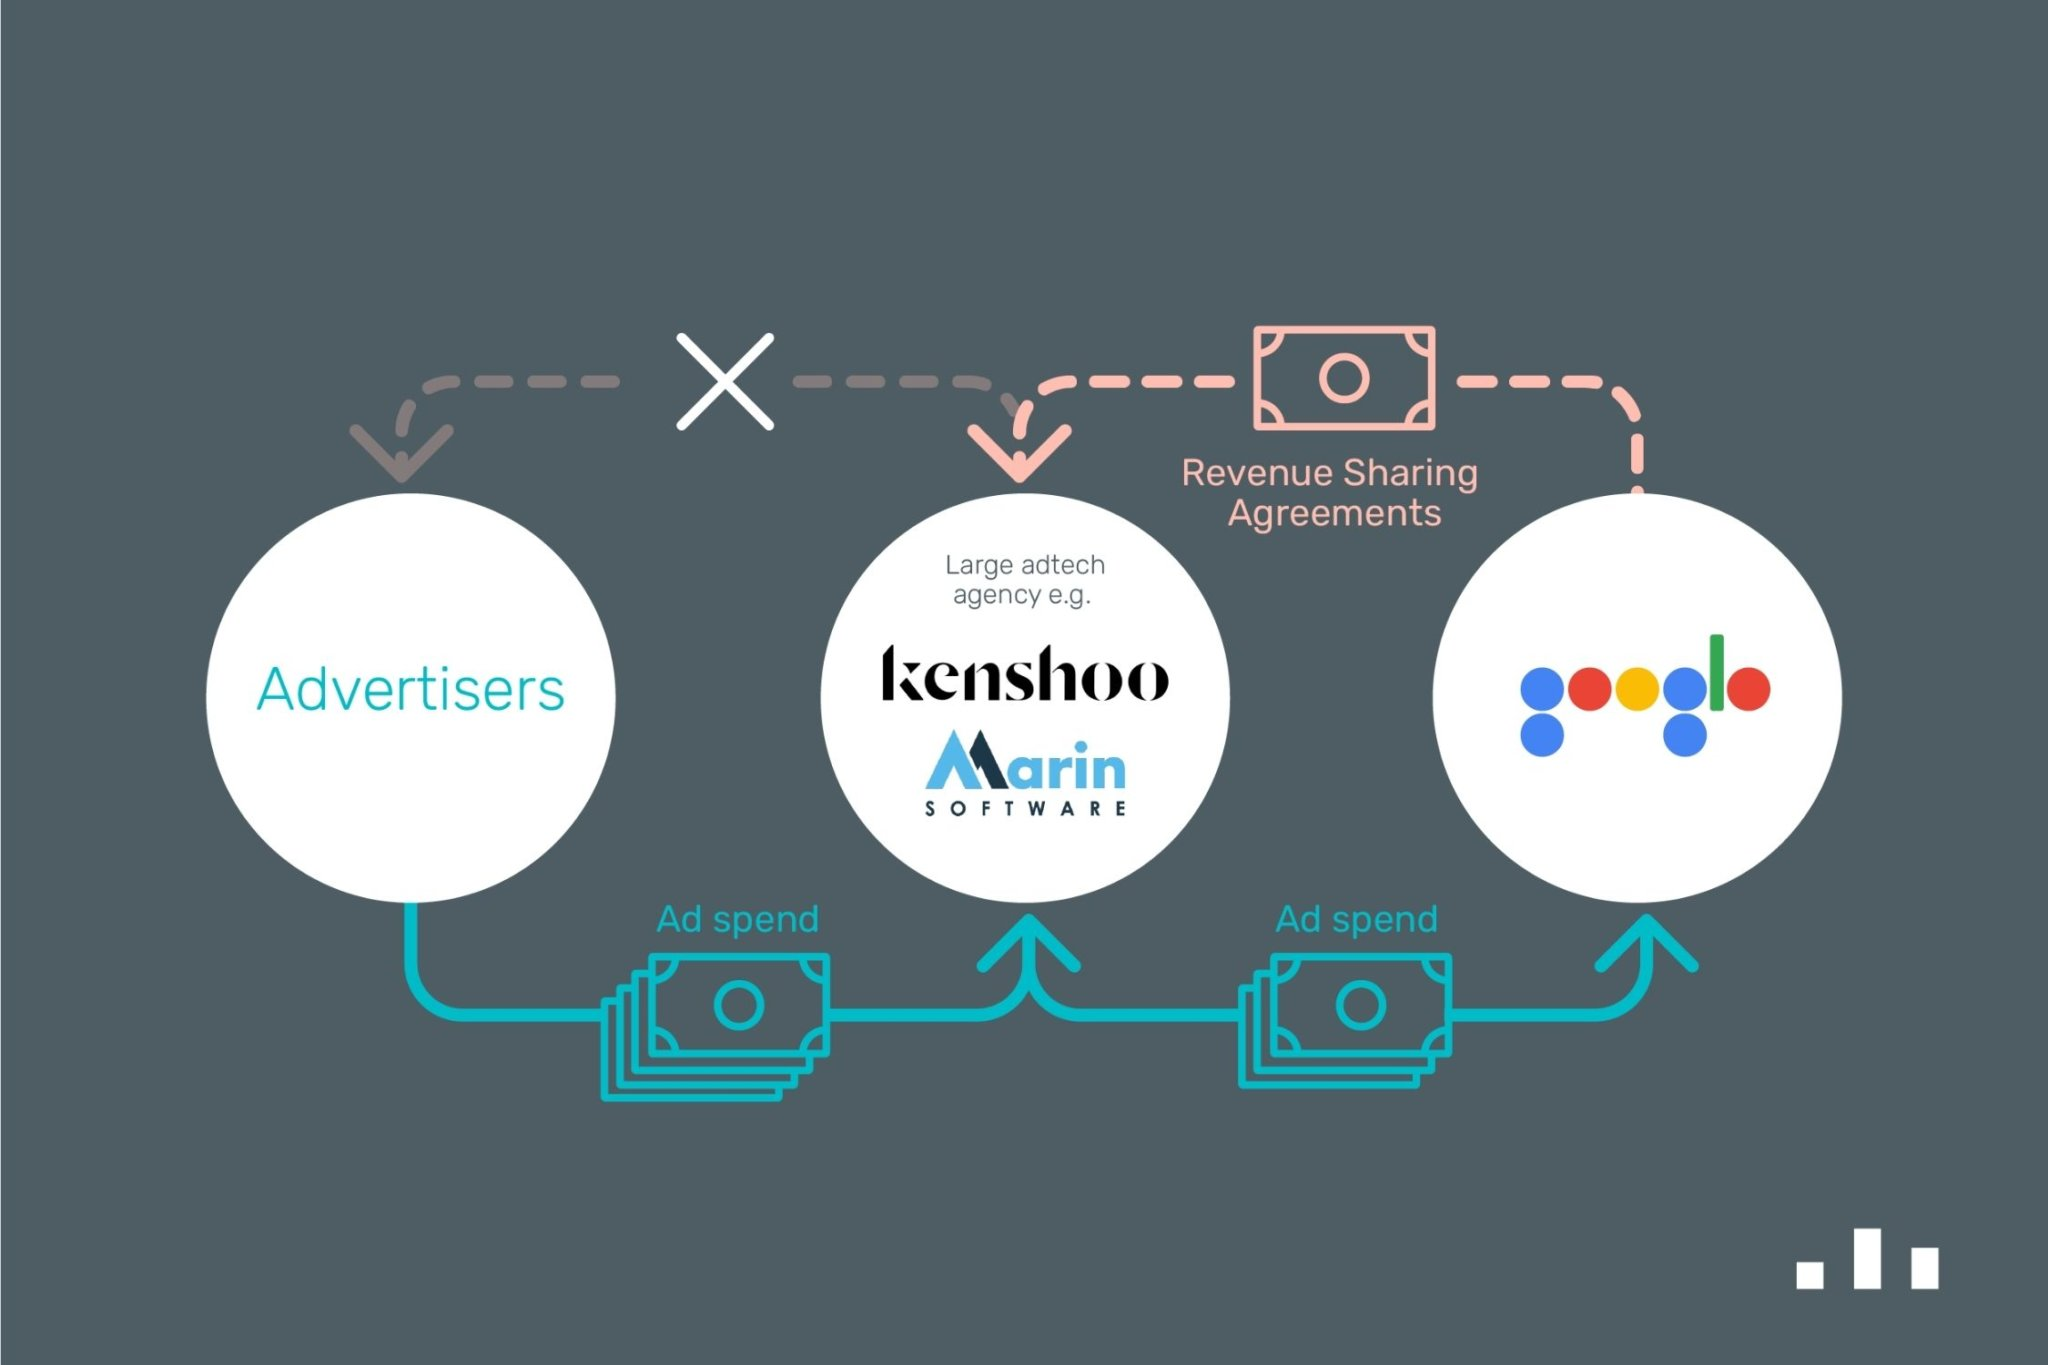 Why does Google have Revenue Sharing Agreements with adtech platforms?